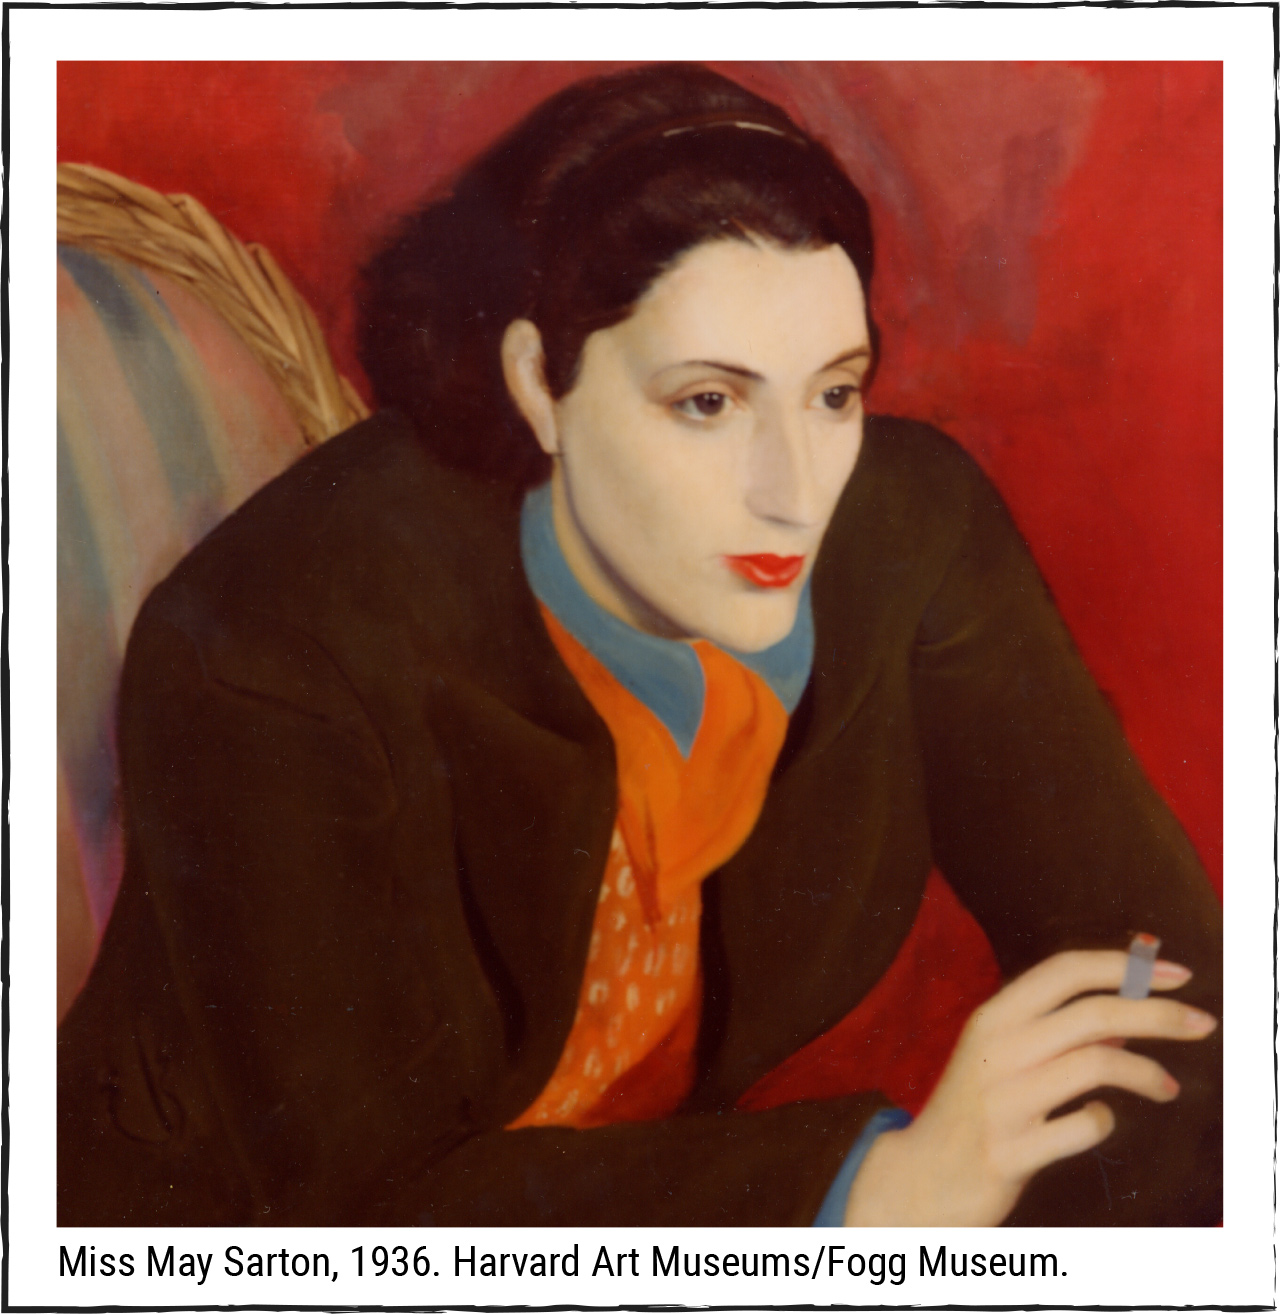 Miss May Sarton